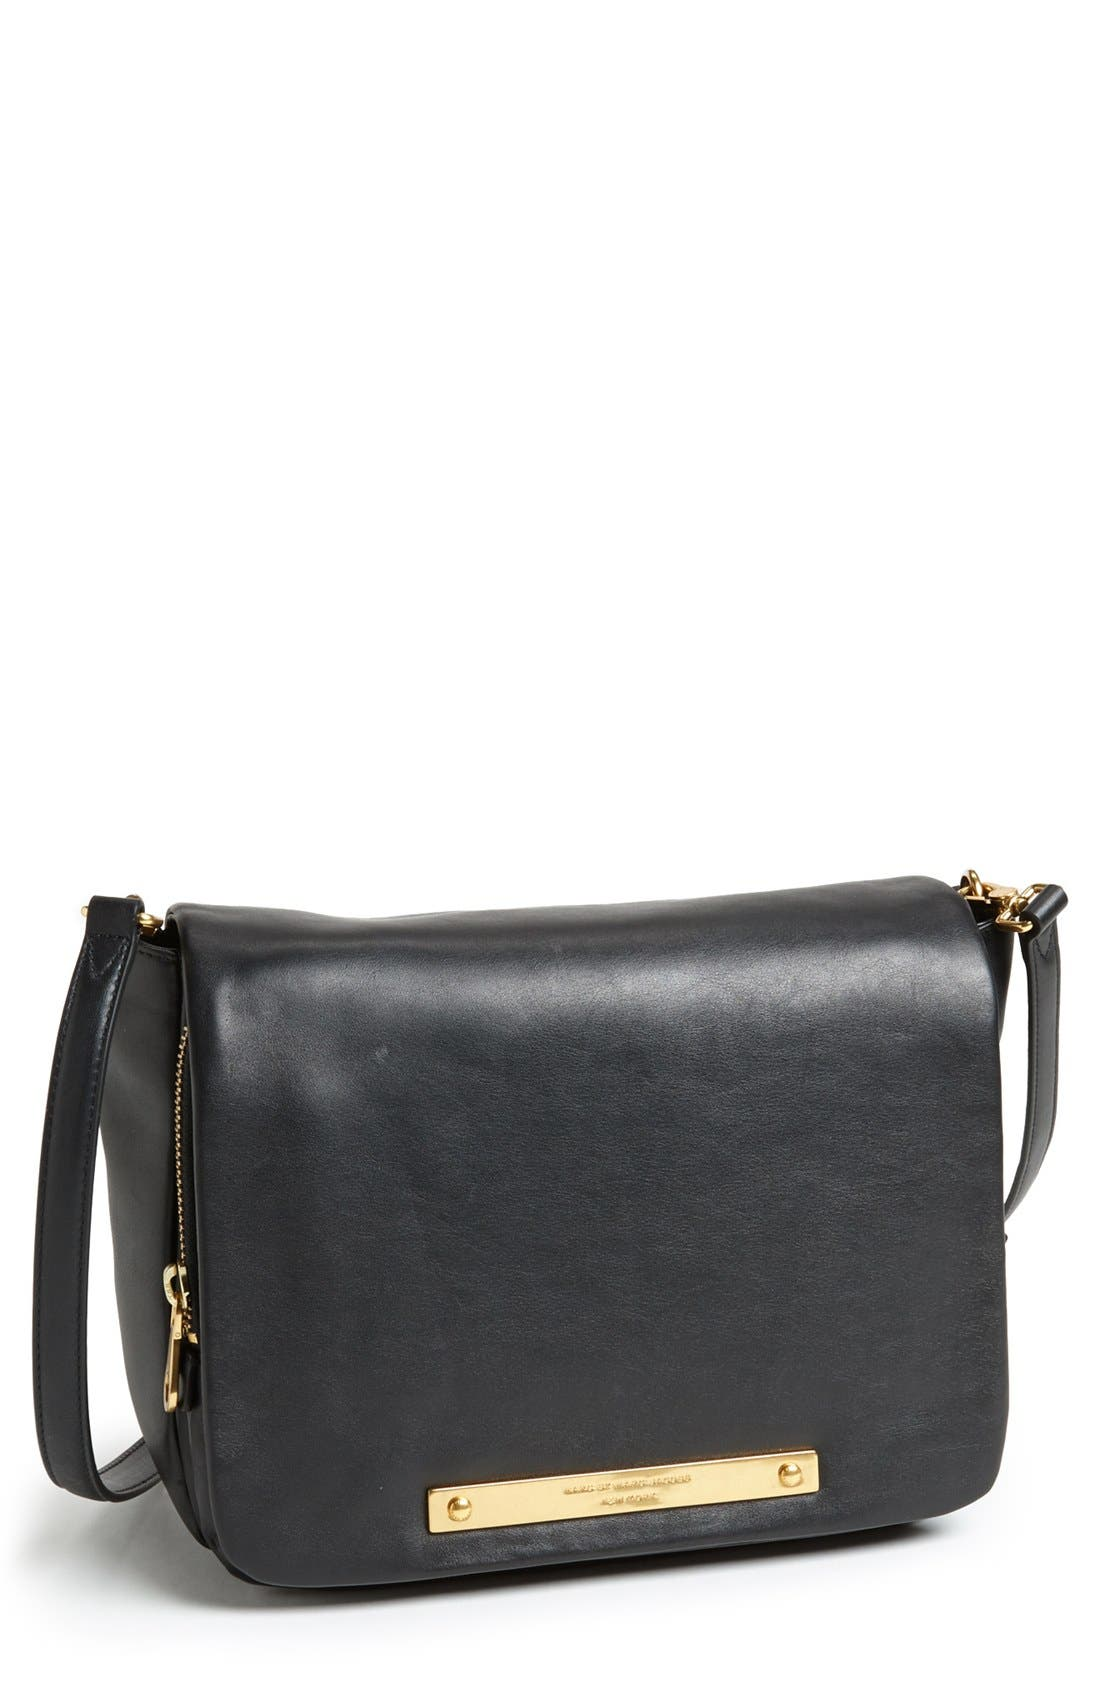 Main Image - MARC BY MARC JACOBS 'Heyo' Crossbody Bag